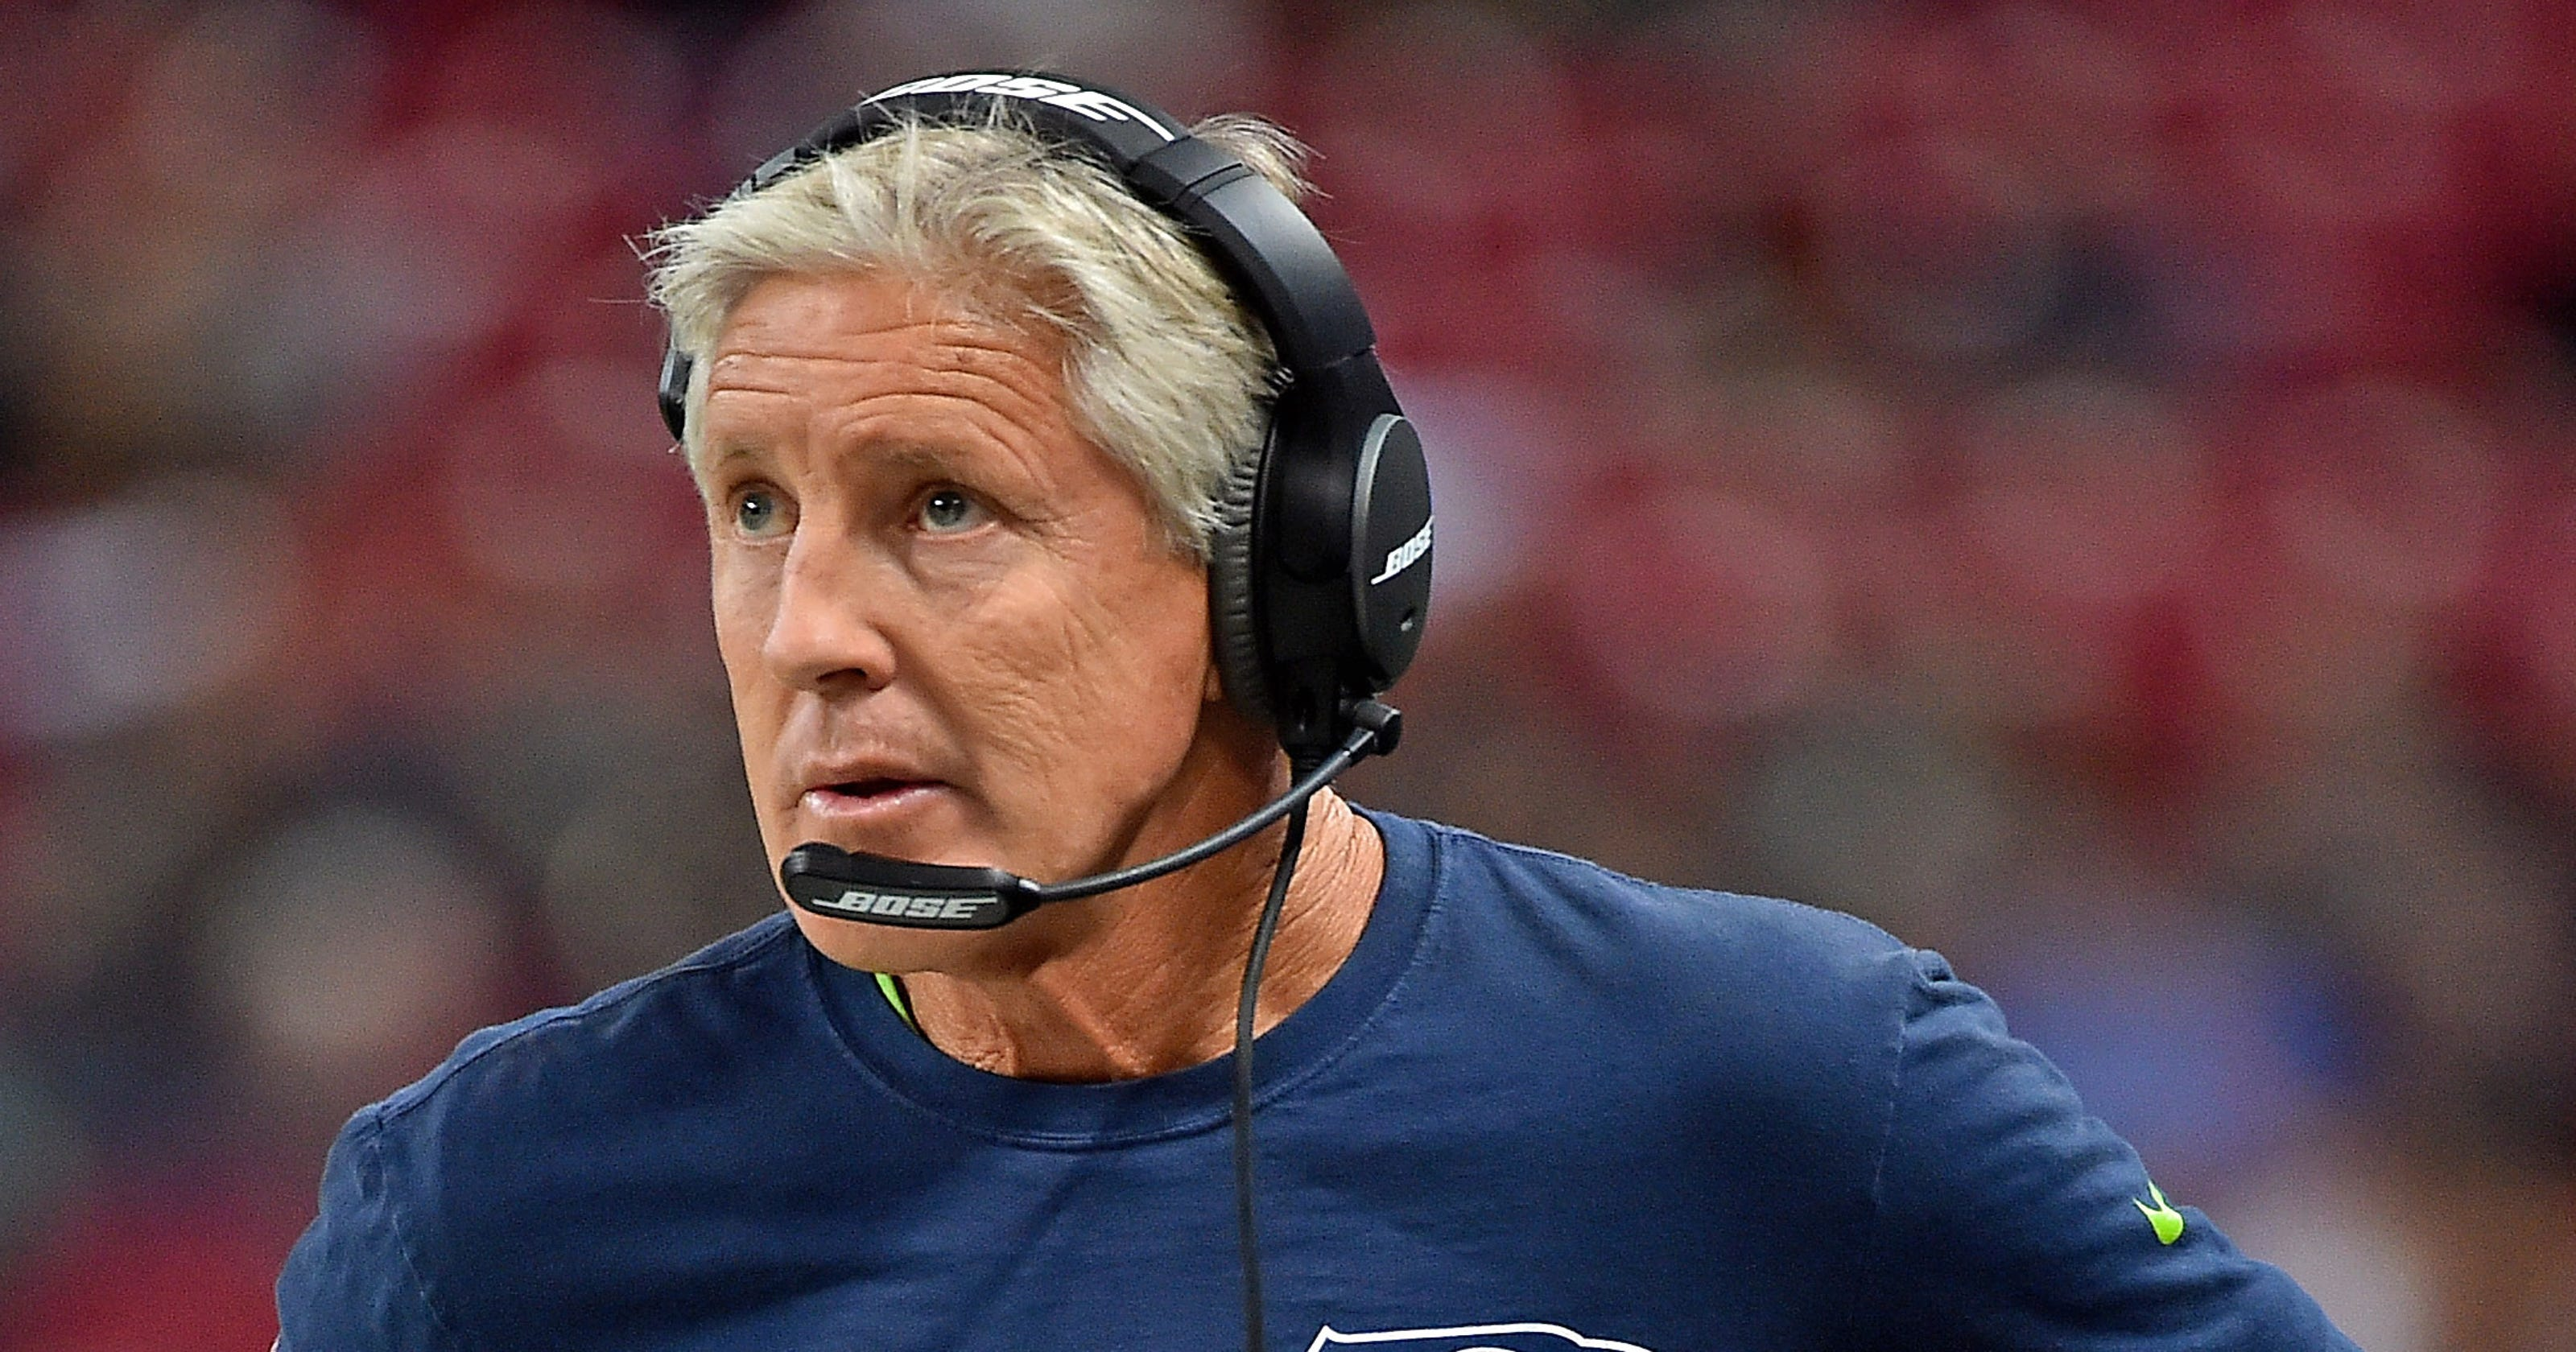 How one book transformed Pete Carroll's approach with Seahawks